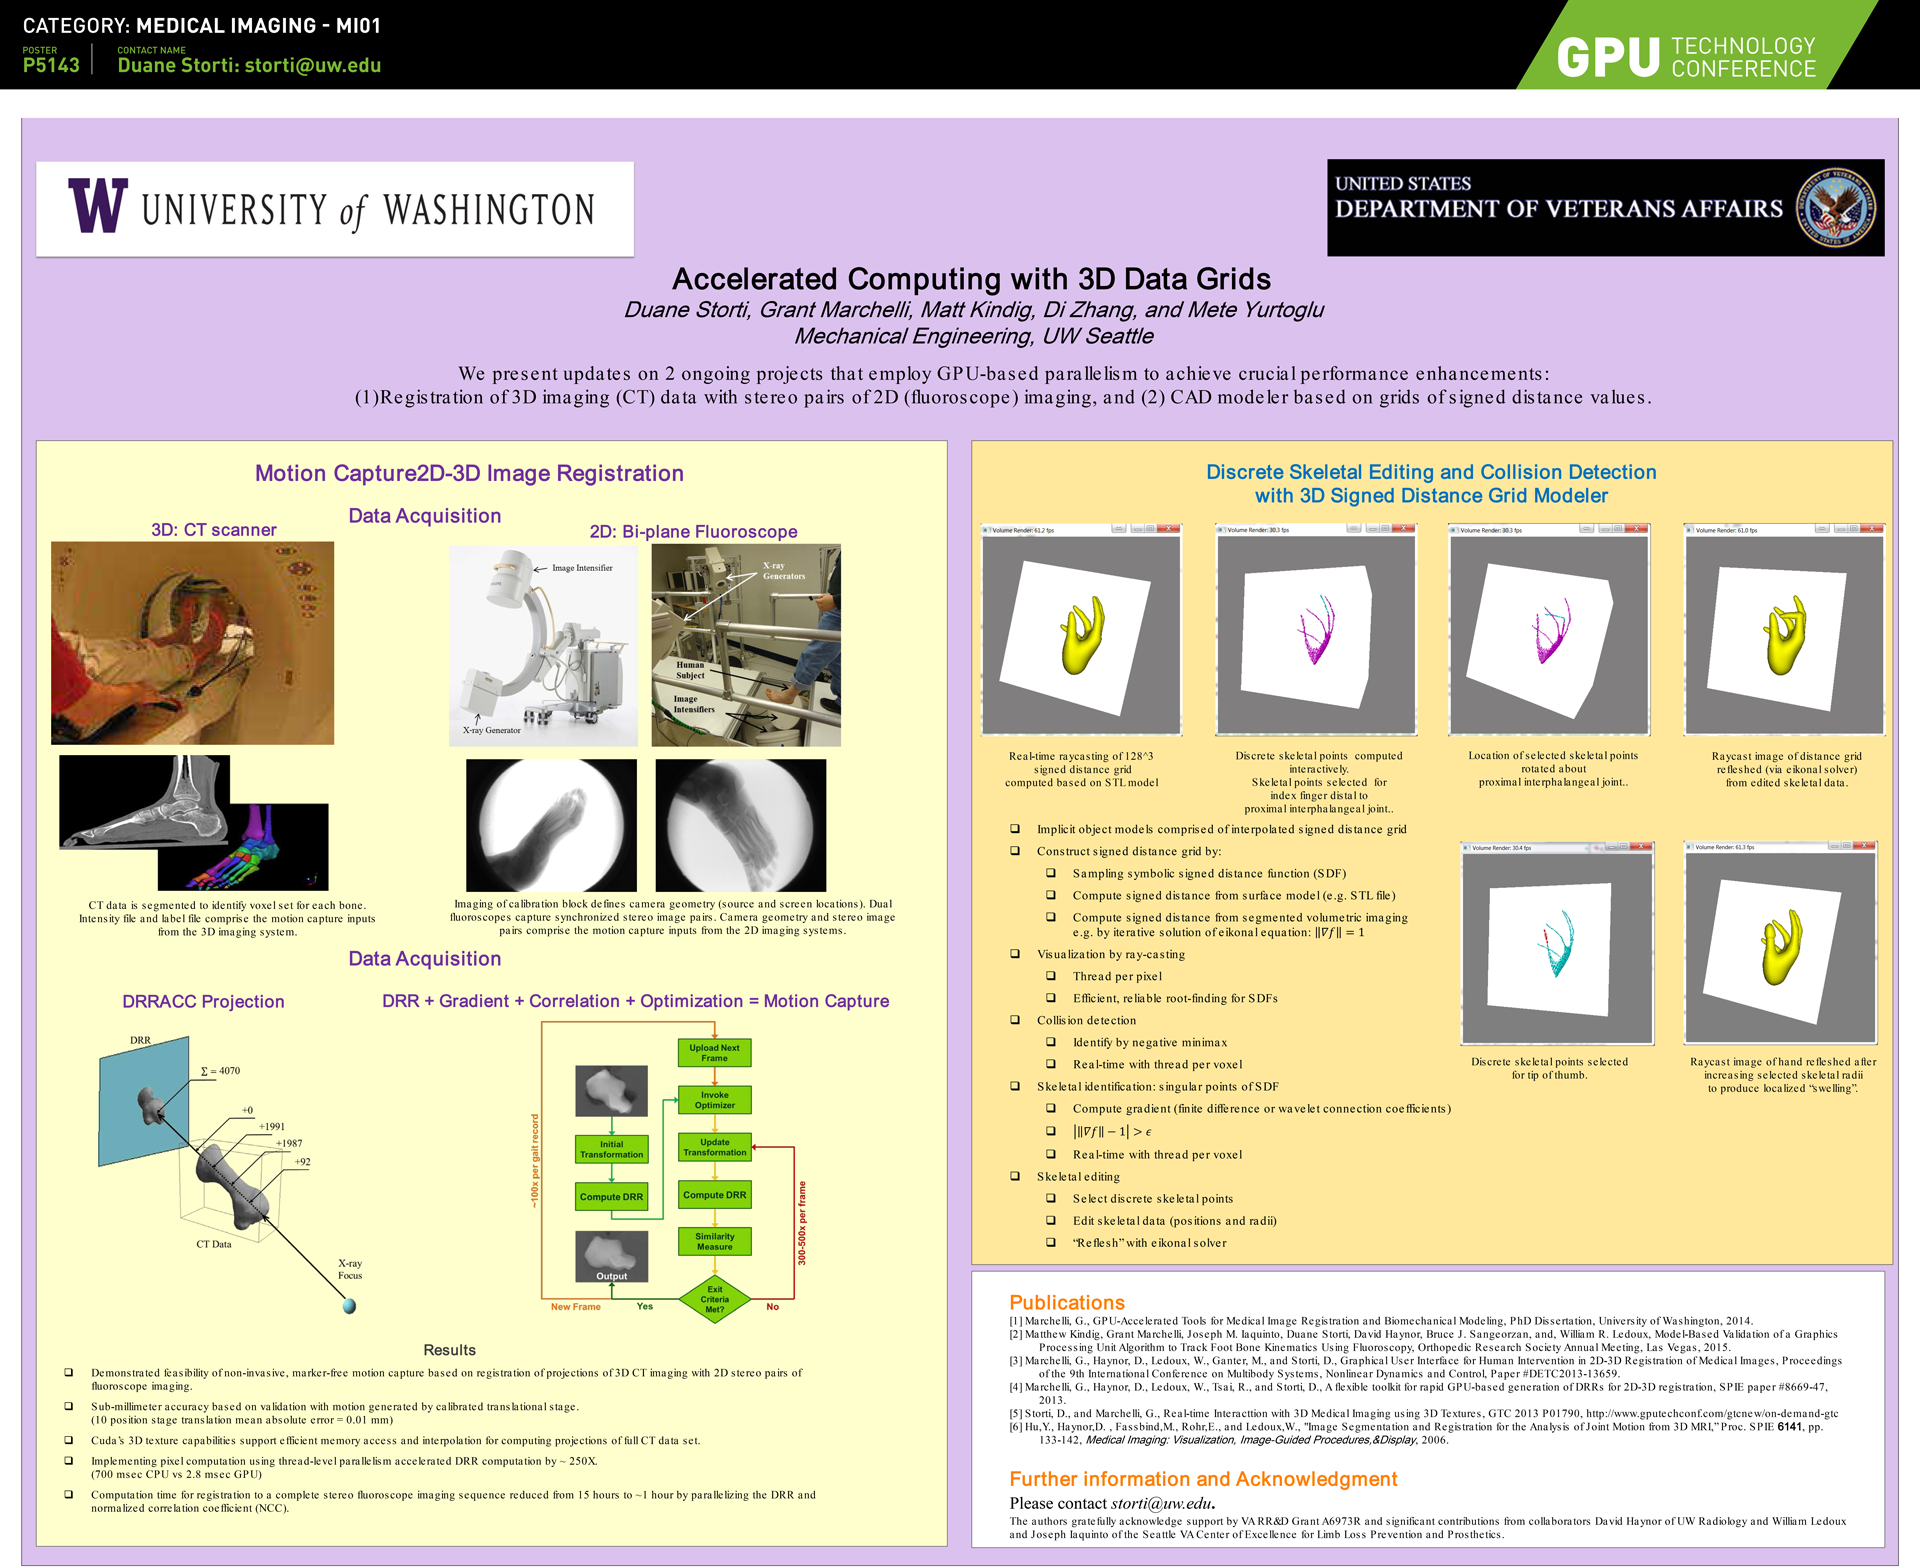 Medical Imaging Conference Posters | GTC 2018